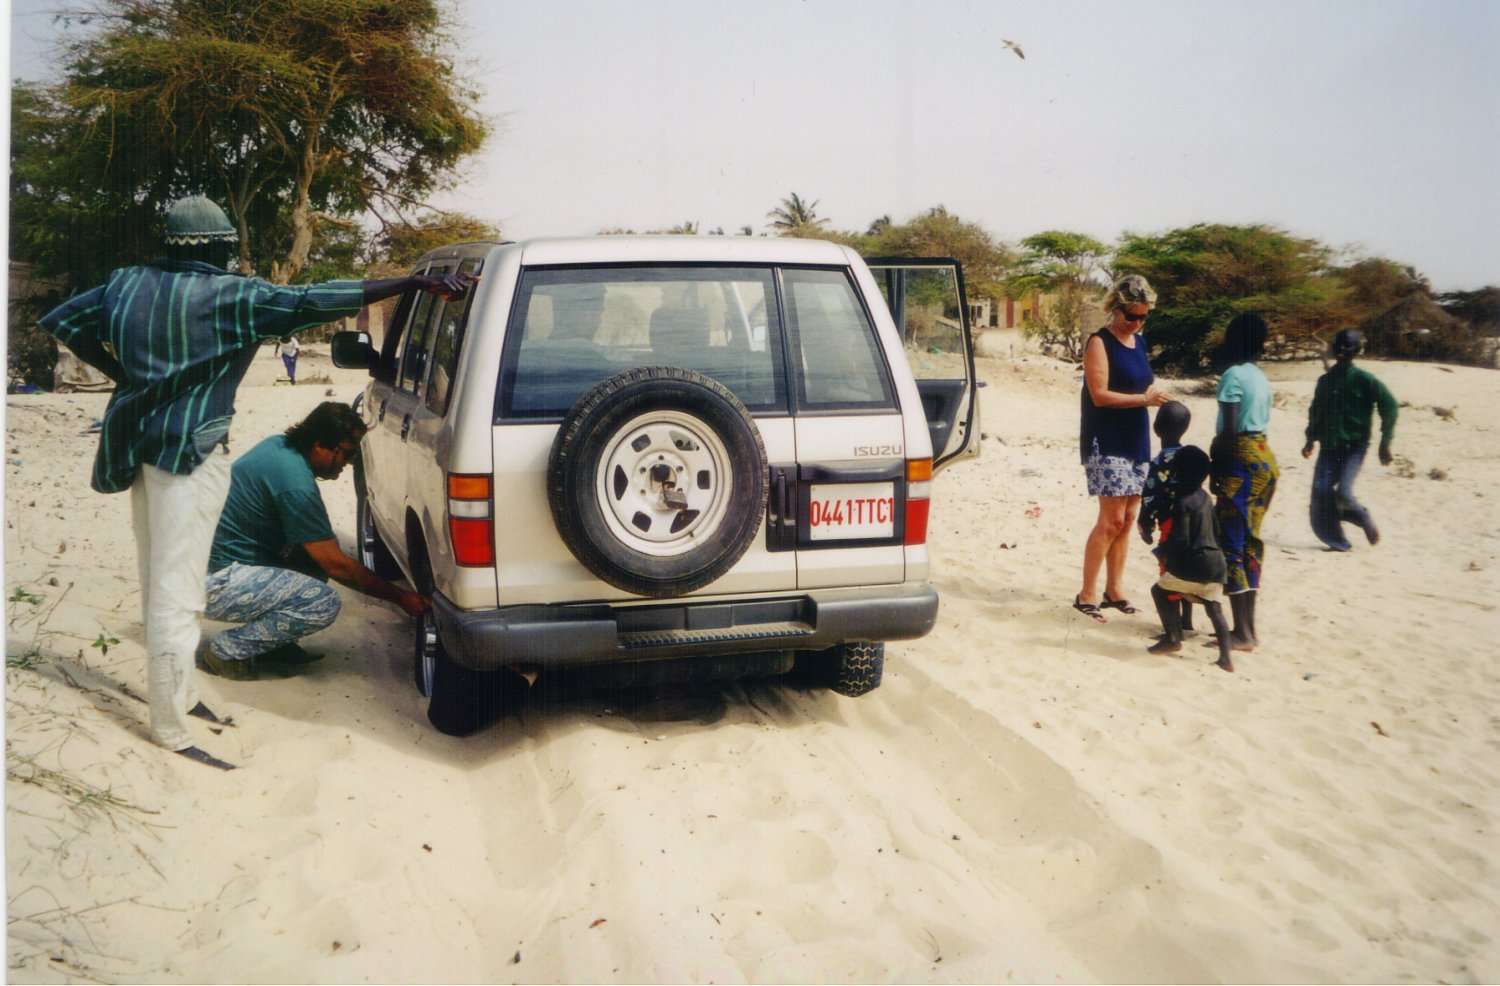 Pierre Reynaud of IRD letting air out of tires for better traction in the sand on Mboro Beach